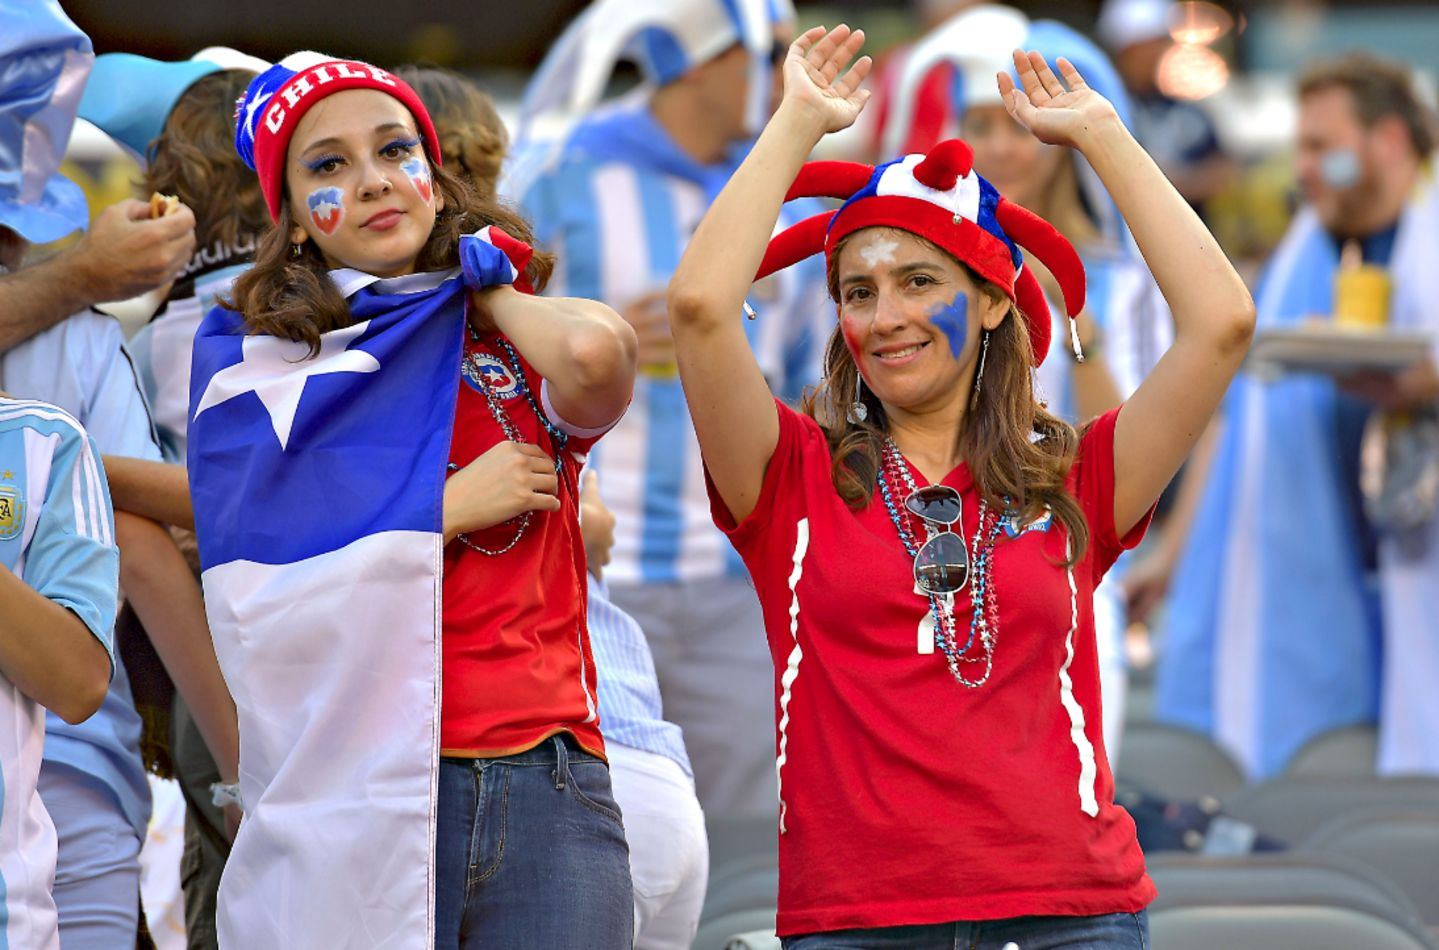 Hinchas chilenas. Supportrices de foot chiliennes